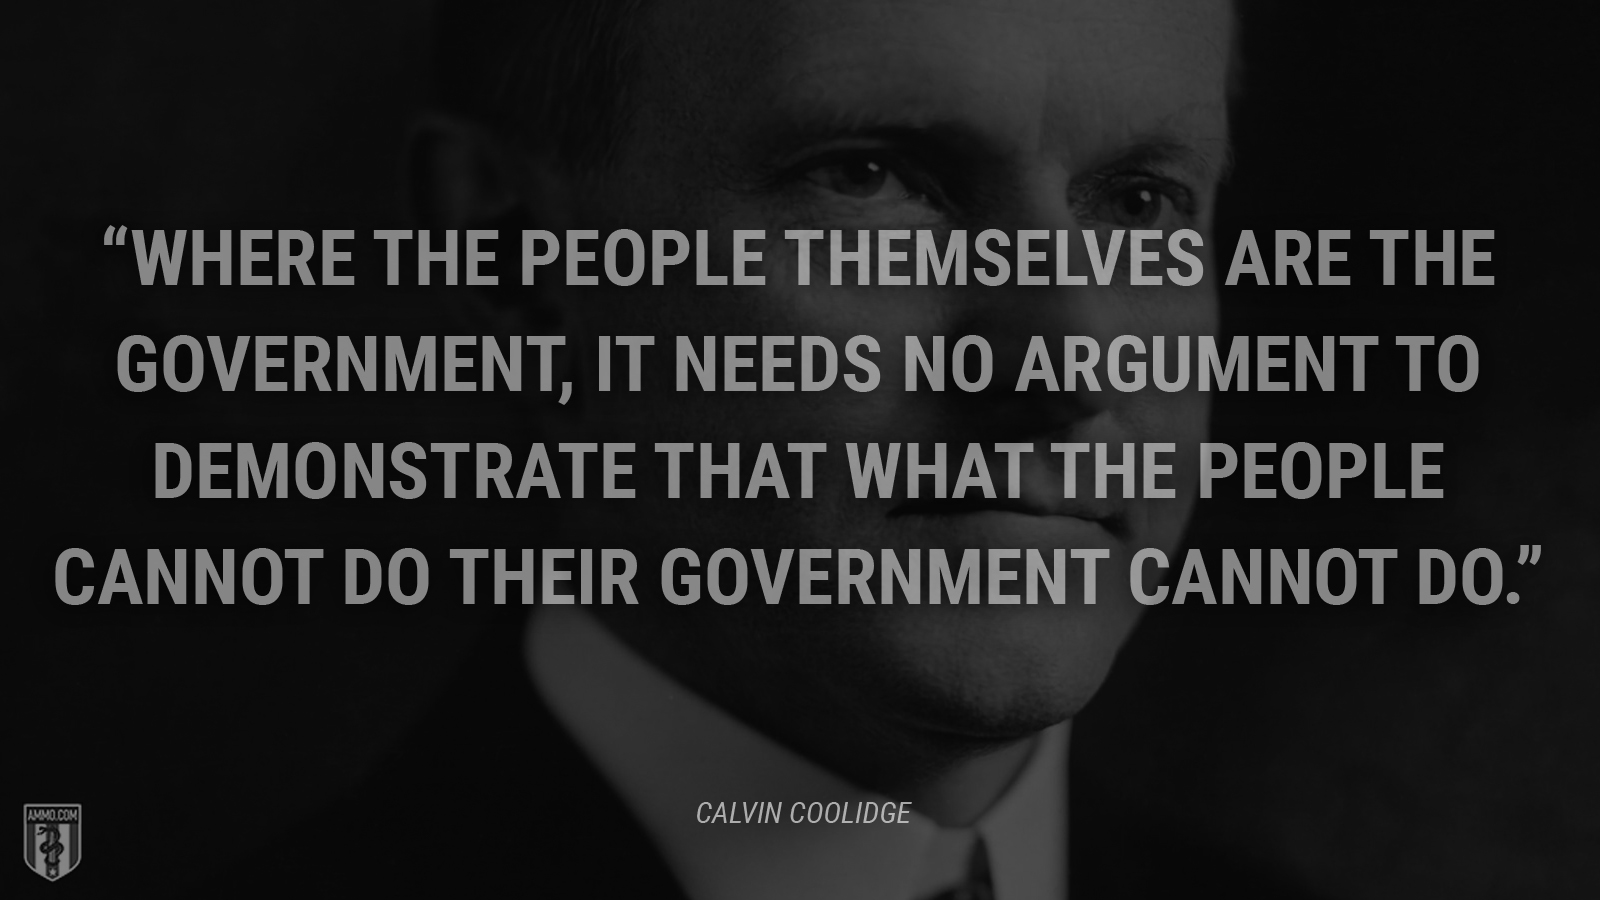 """Where the people themselves are the government, it needs no argument to demonstrate that what the people cannot do their government cannot do."" - Calvin Coolidge"